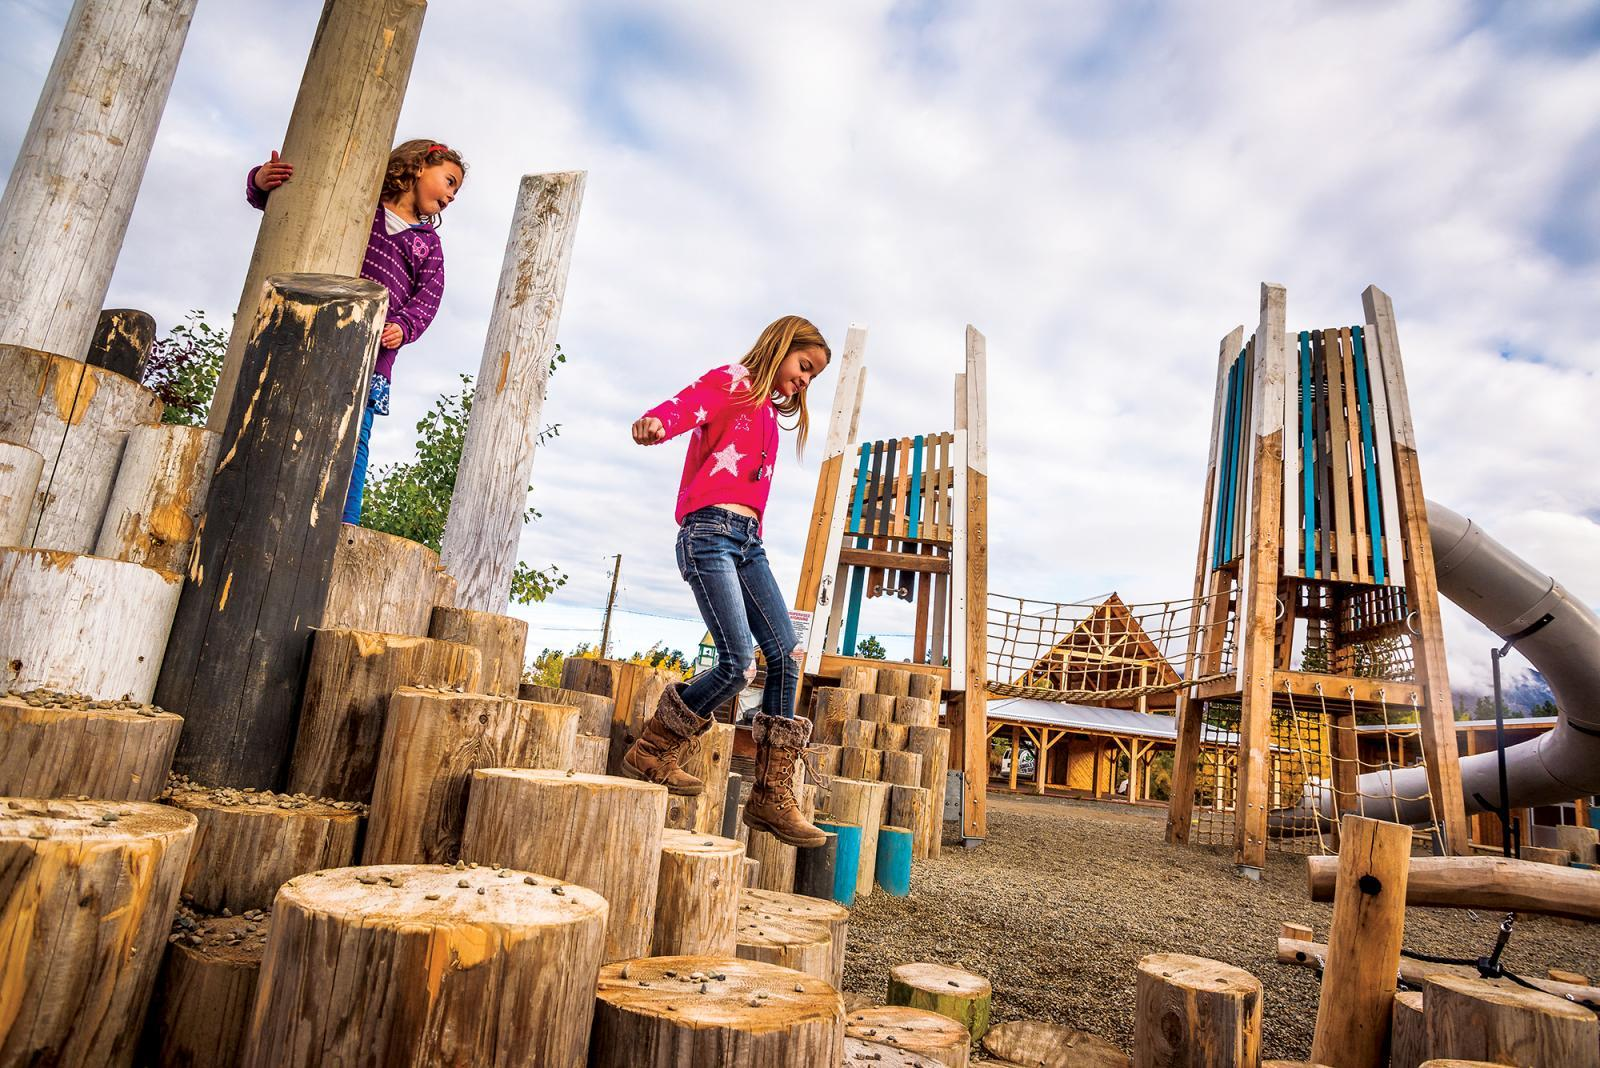 Niche market nurtures with nature: Contractors diversify into natural playgrounds